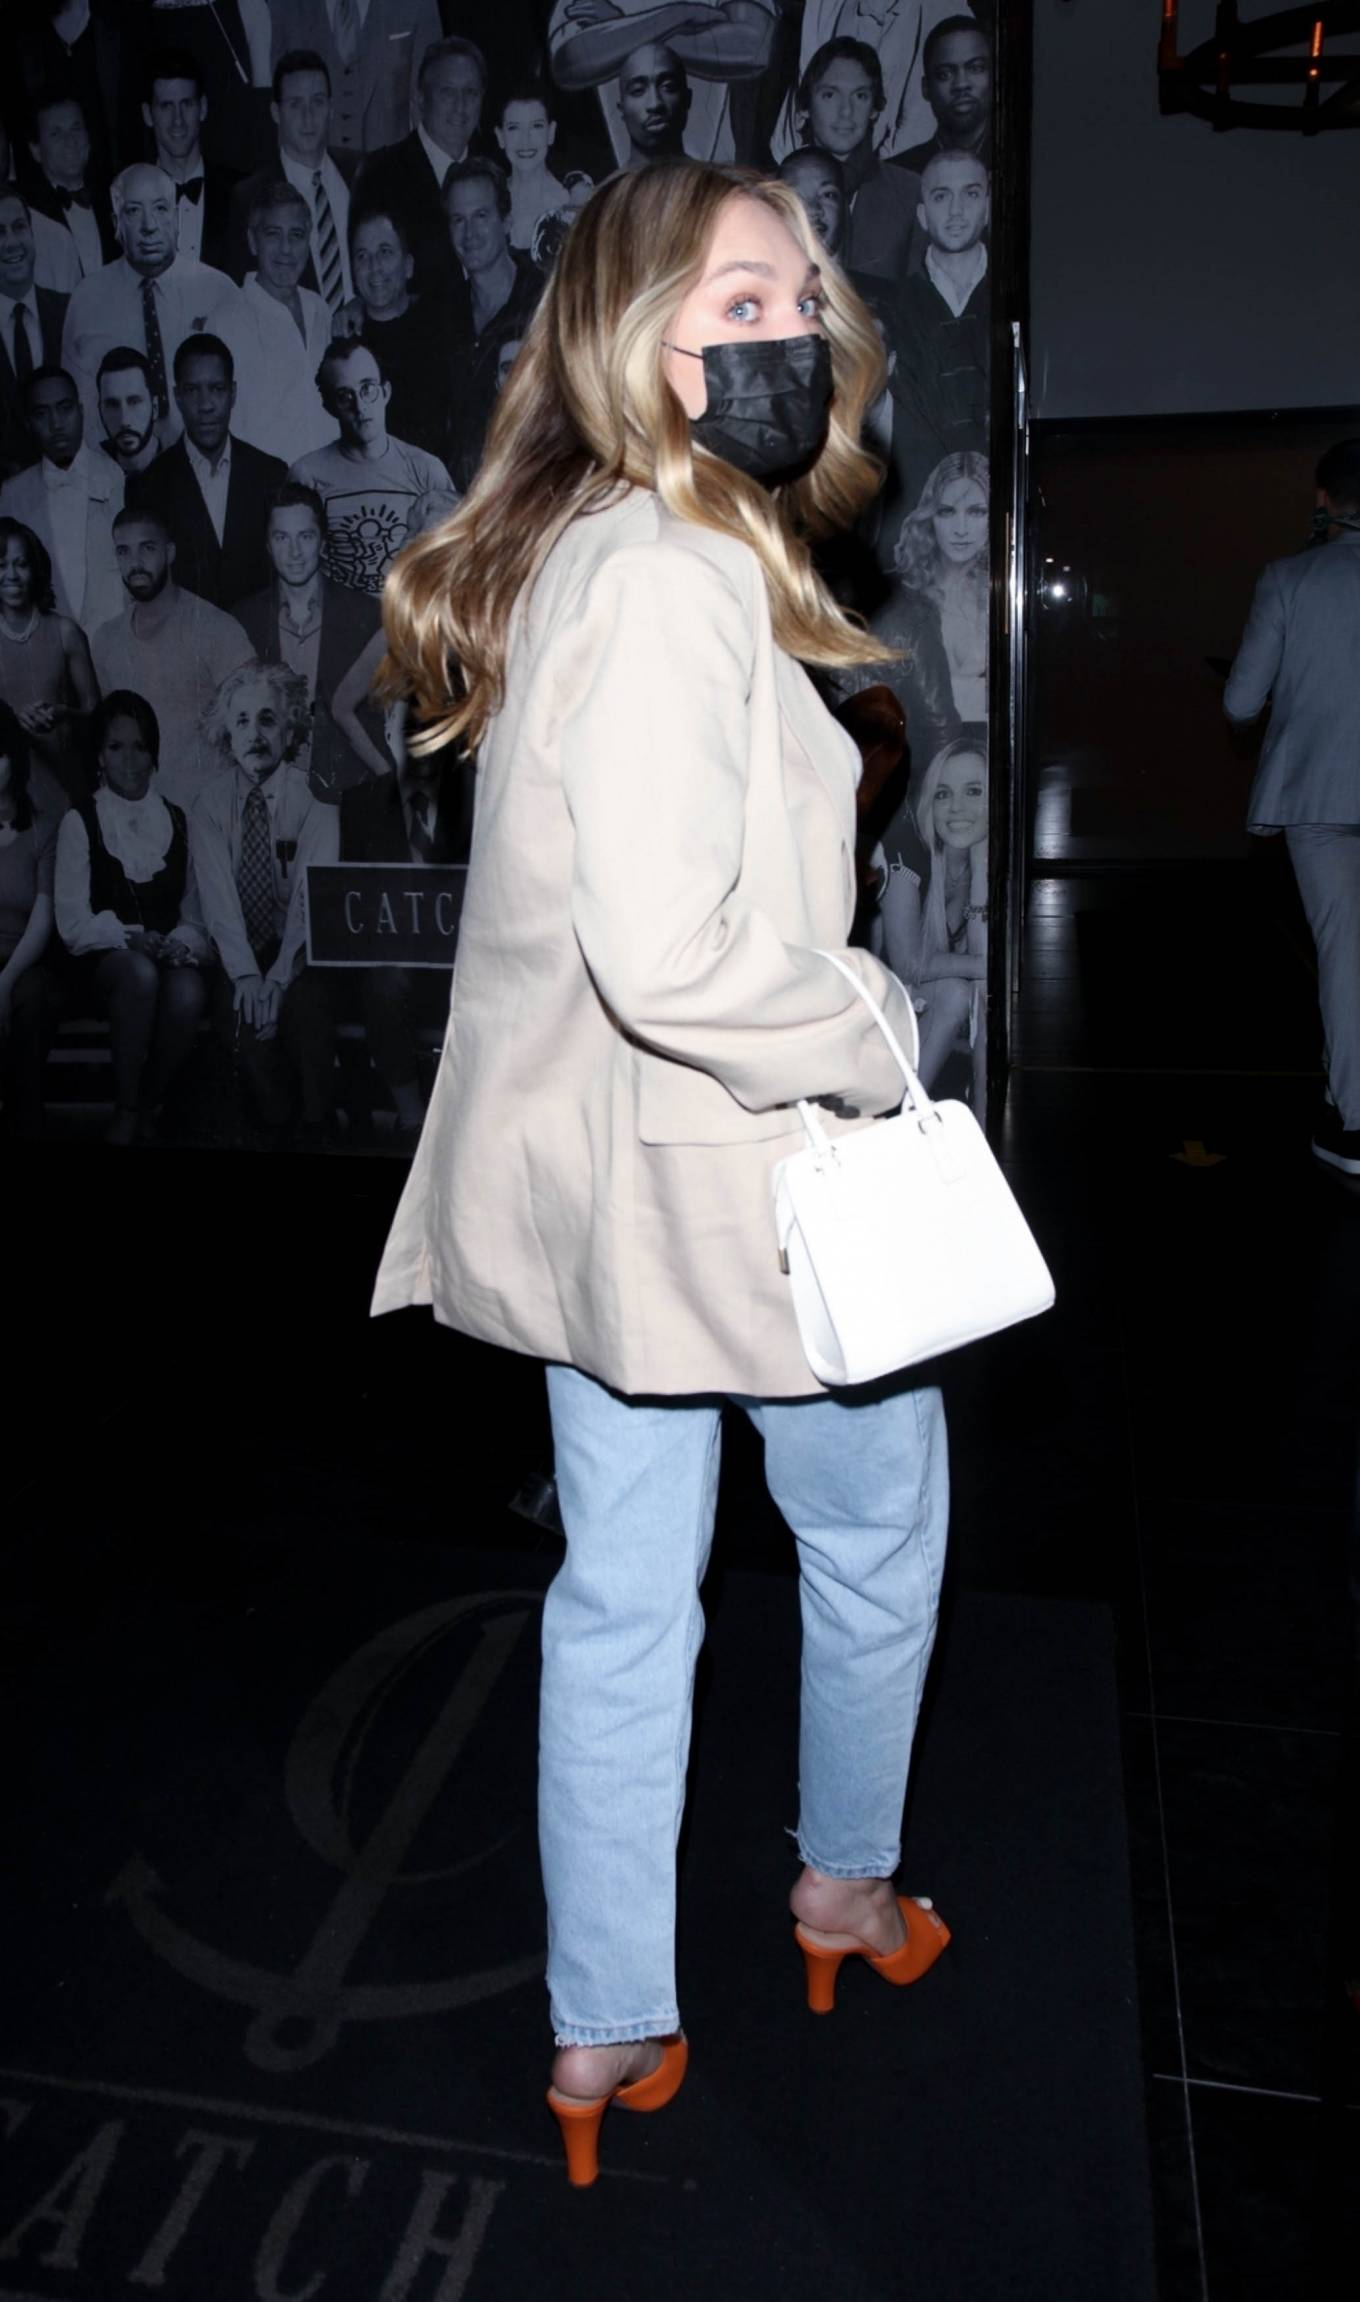 Maddie Ziegler 2021 : Maddie Ziegler – In jeans and a blazer out for dinner at Catch LA in West Hollywood-02